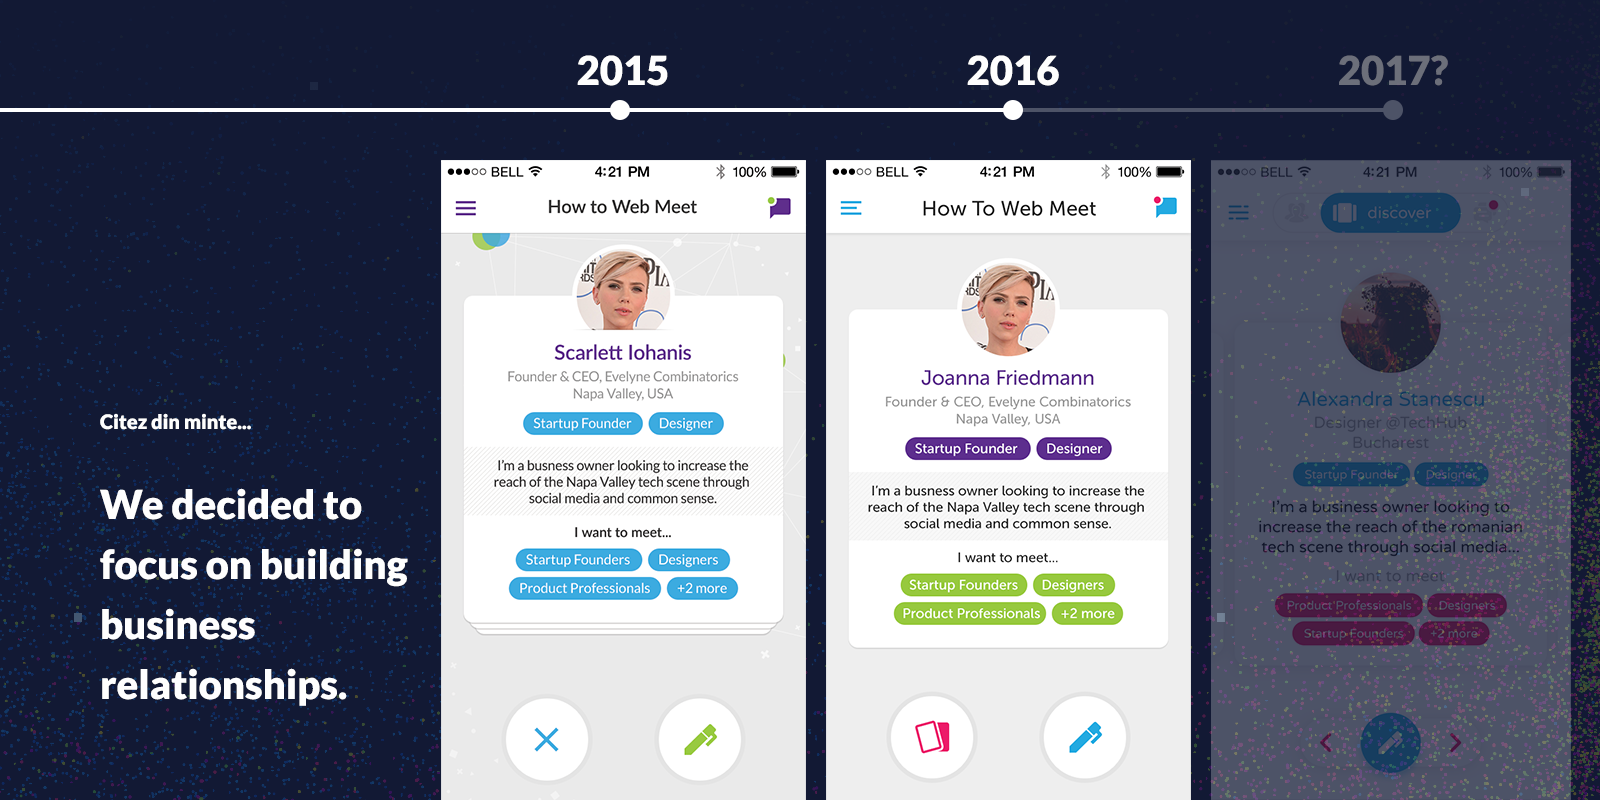 how to web conference app 2015 2016